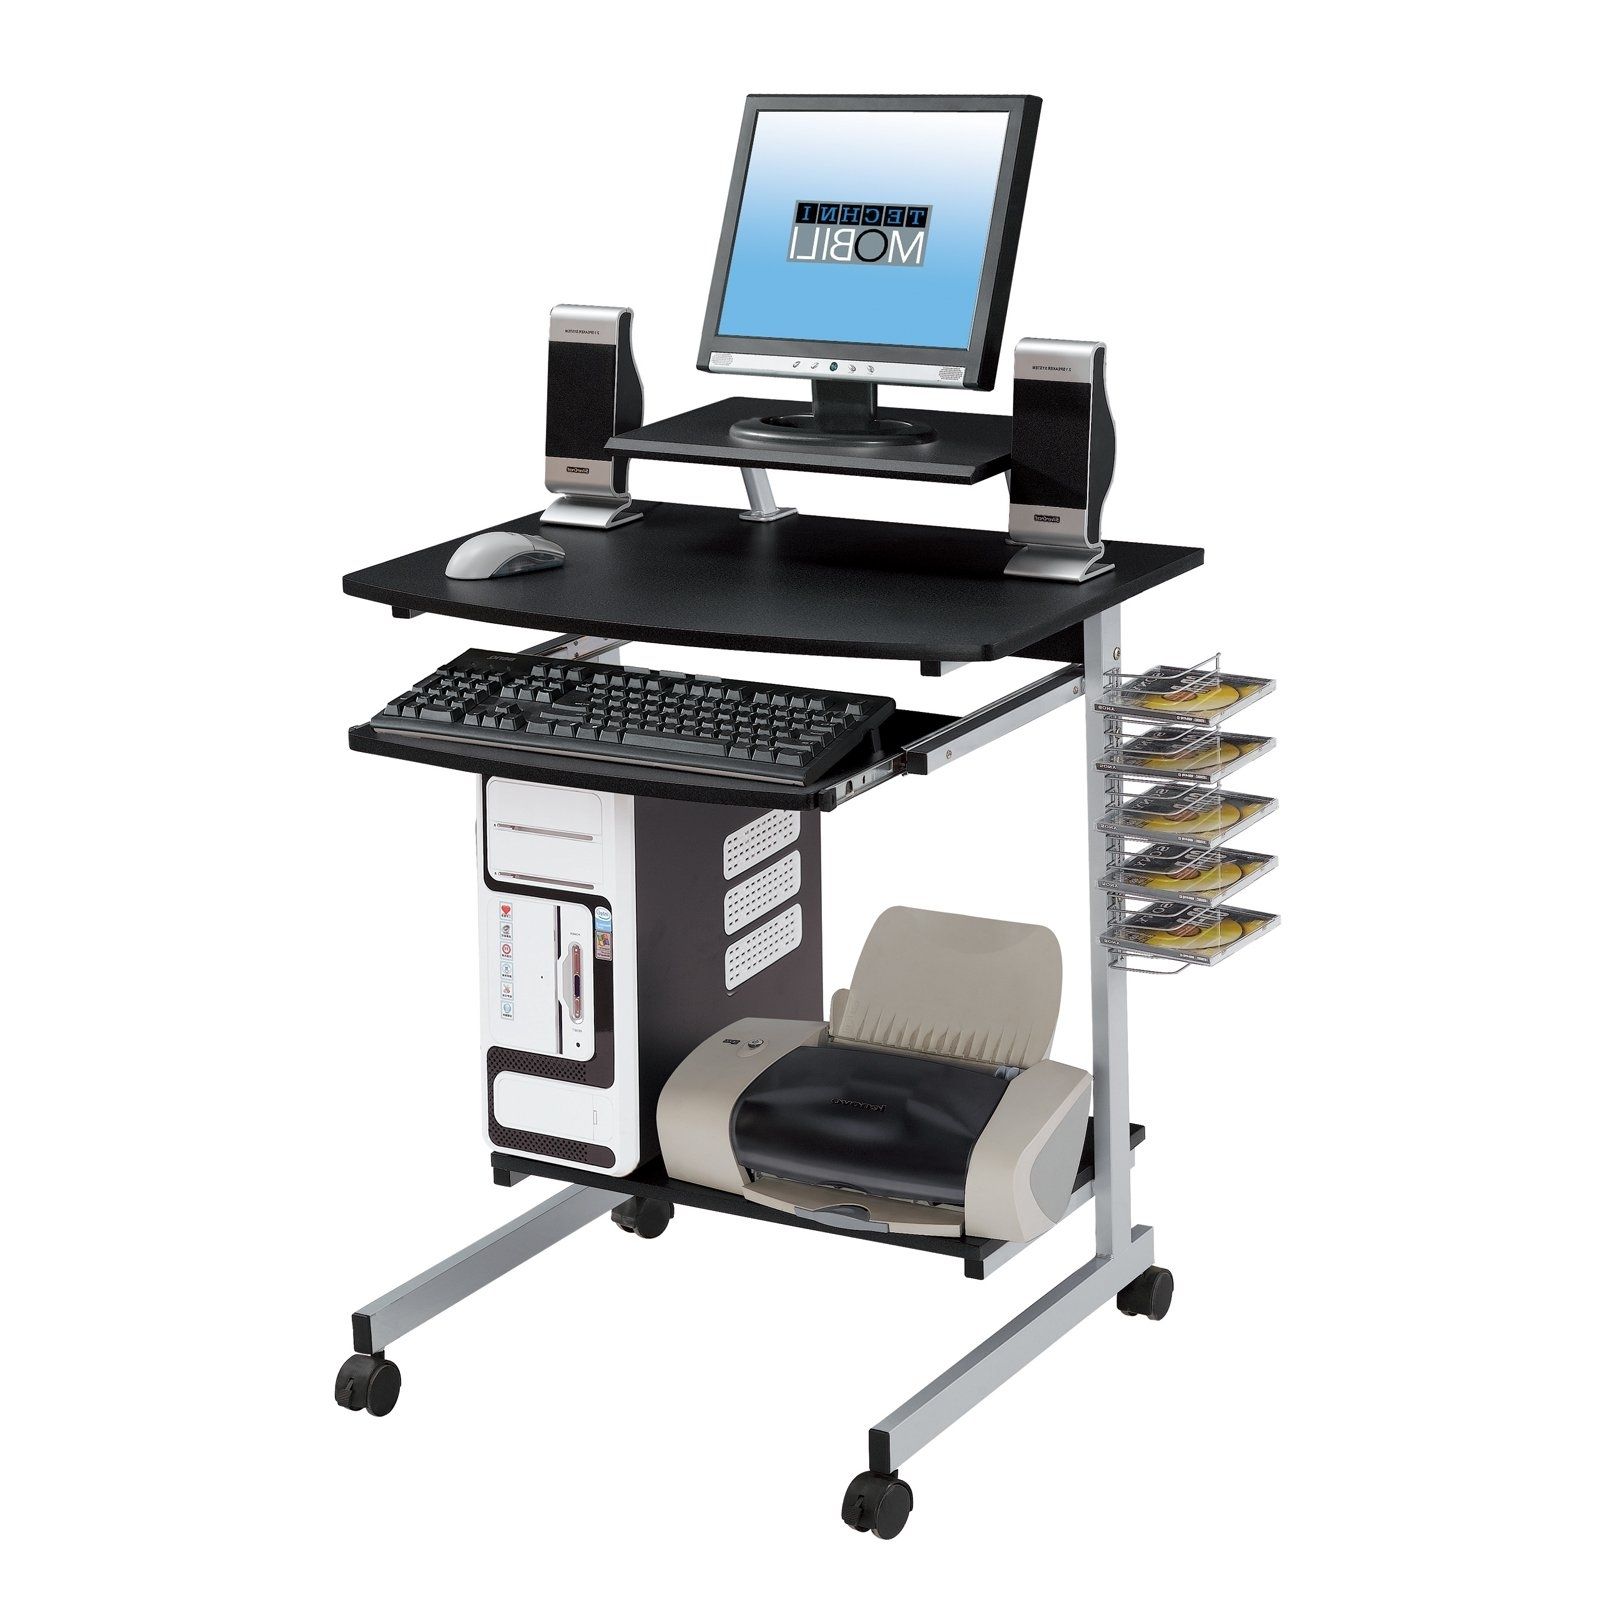 Portable Computer Desks Throughout Well Known Techni Mobili Rolling Computer Desk, Graphite – Walmart (View 6 of 20)